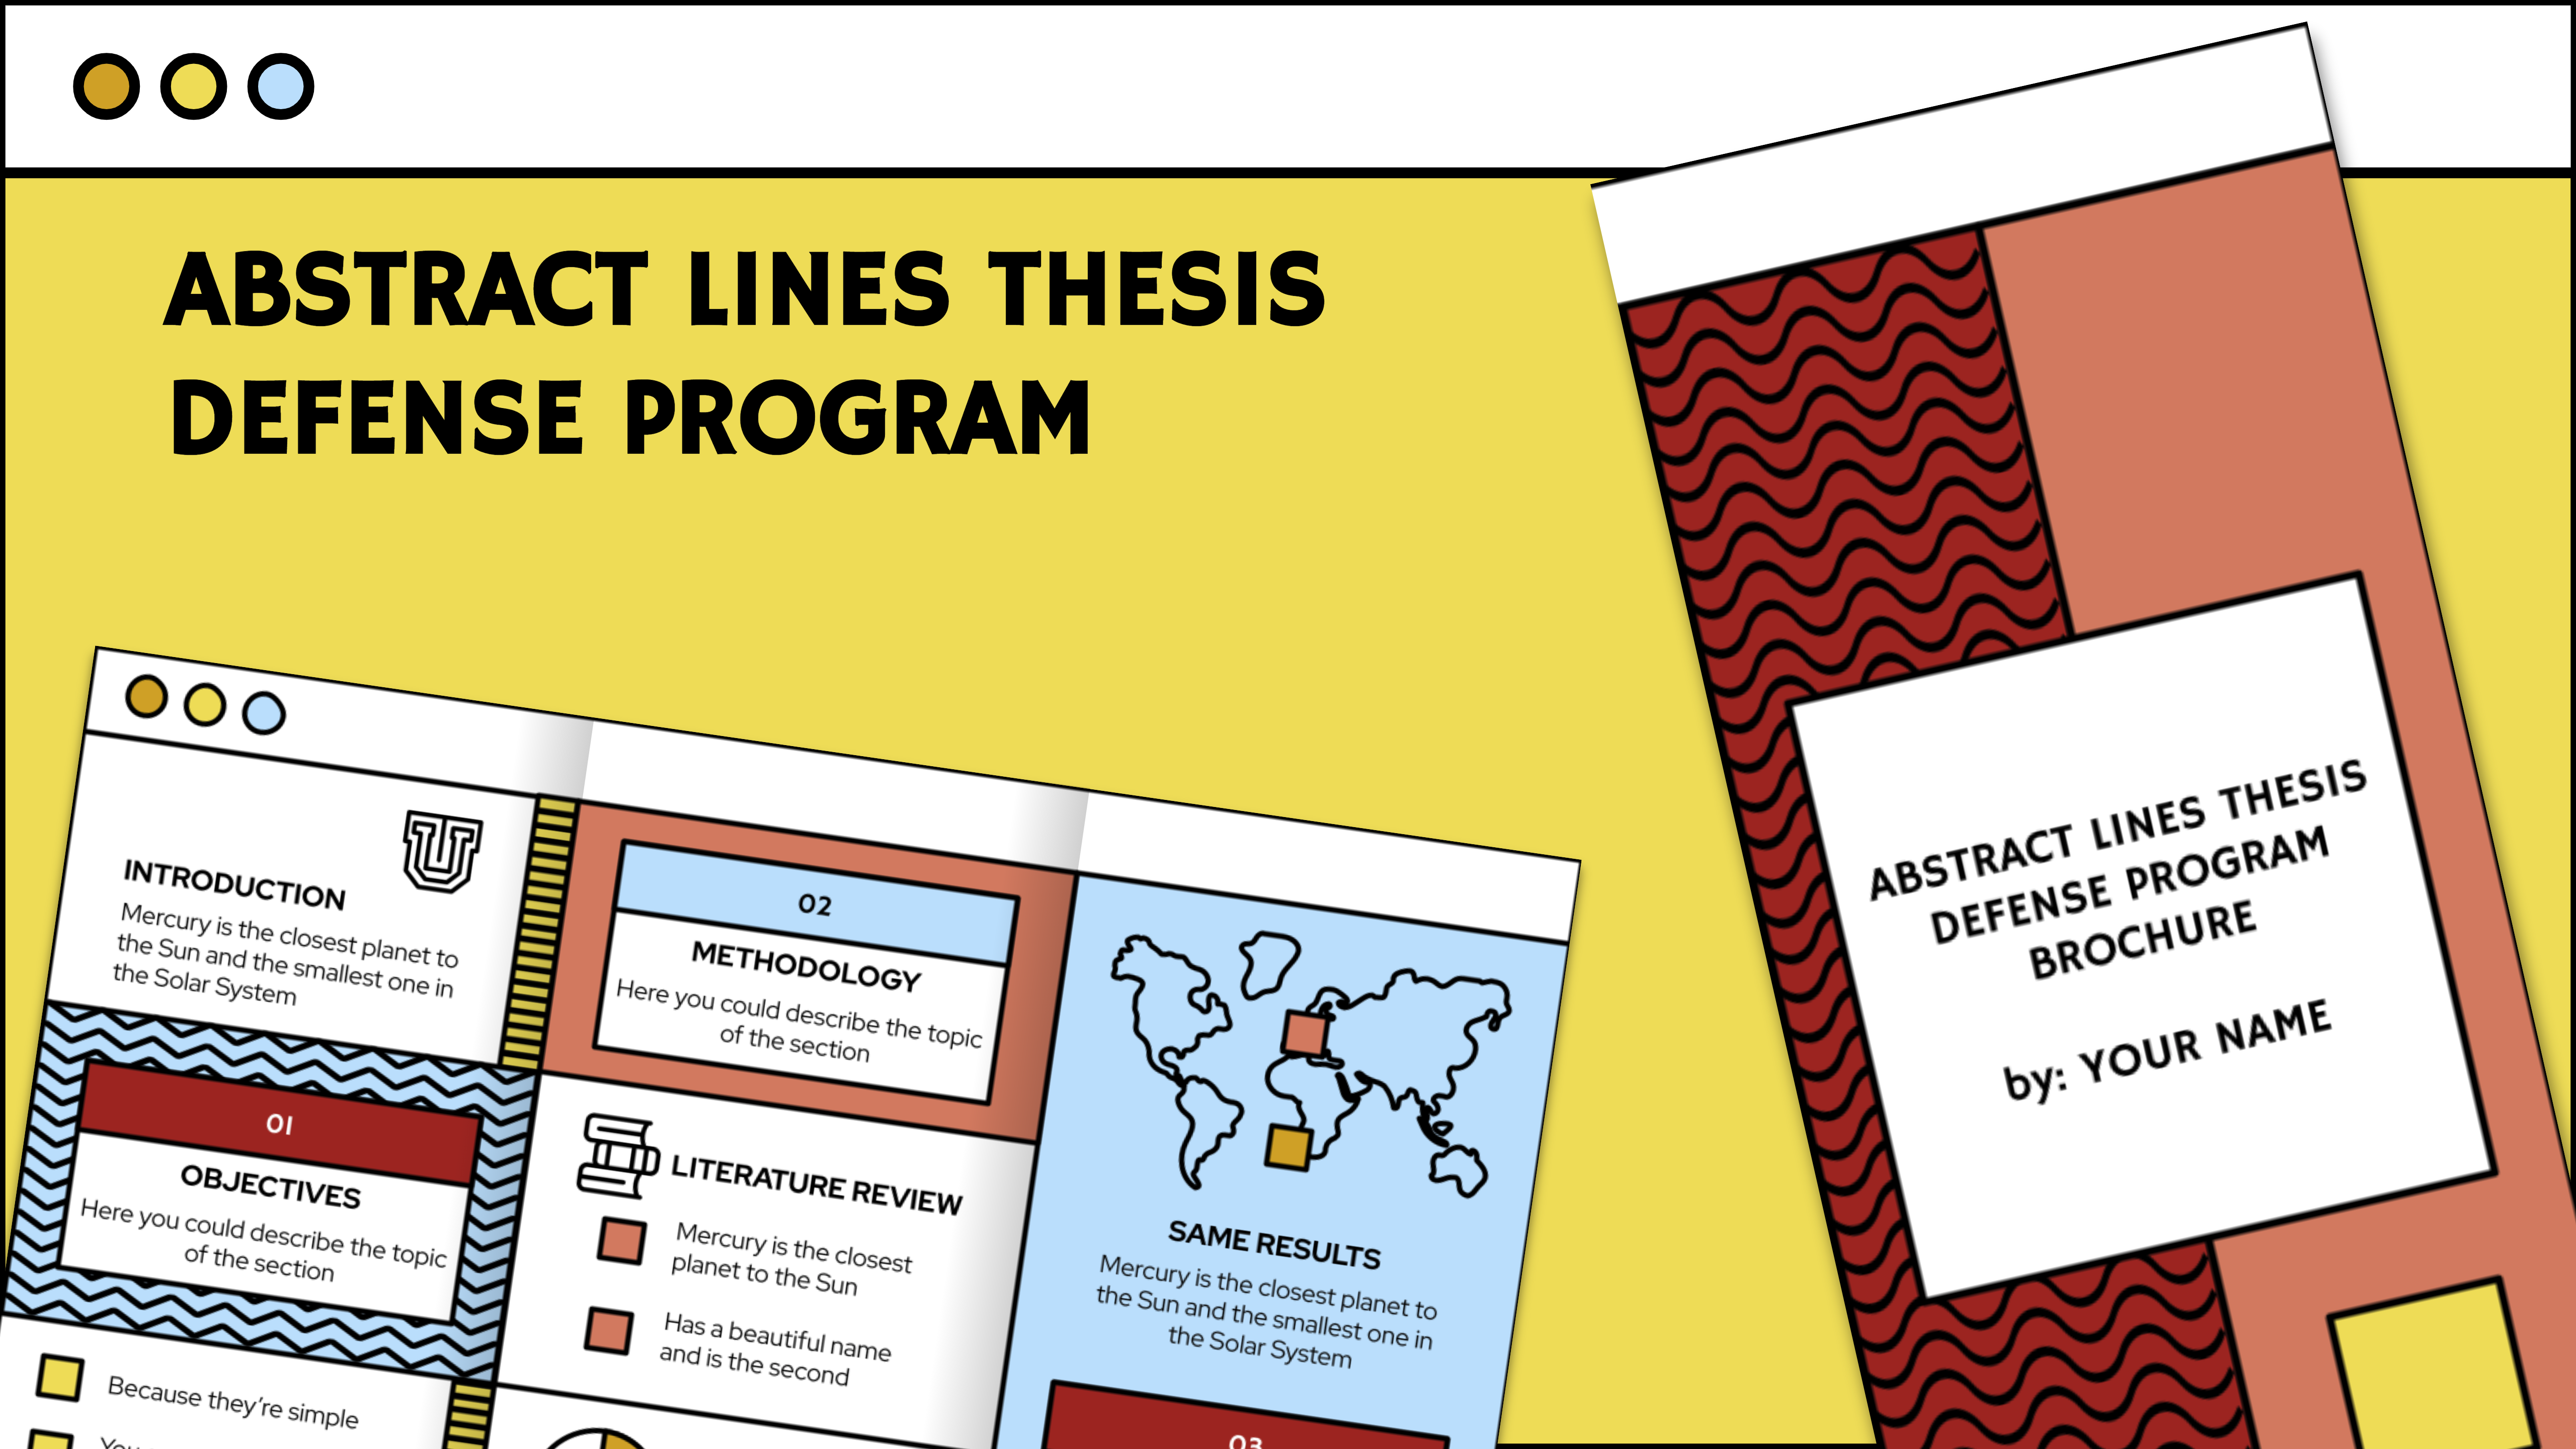 Abstract Lines Thesis Defense Program Brochure presentation template